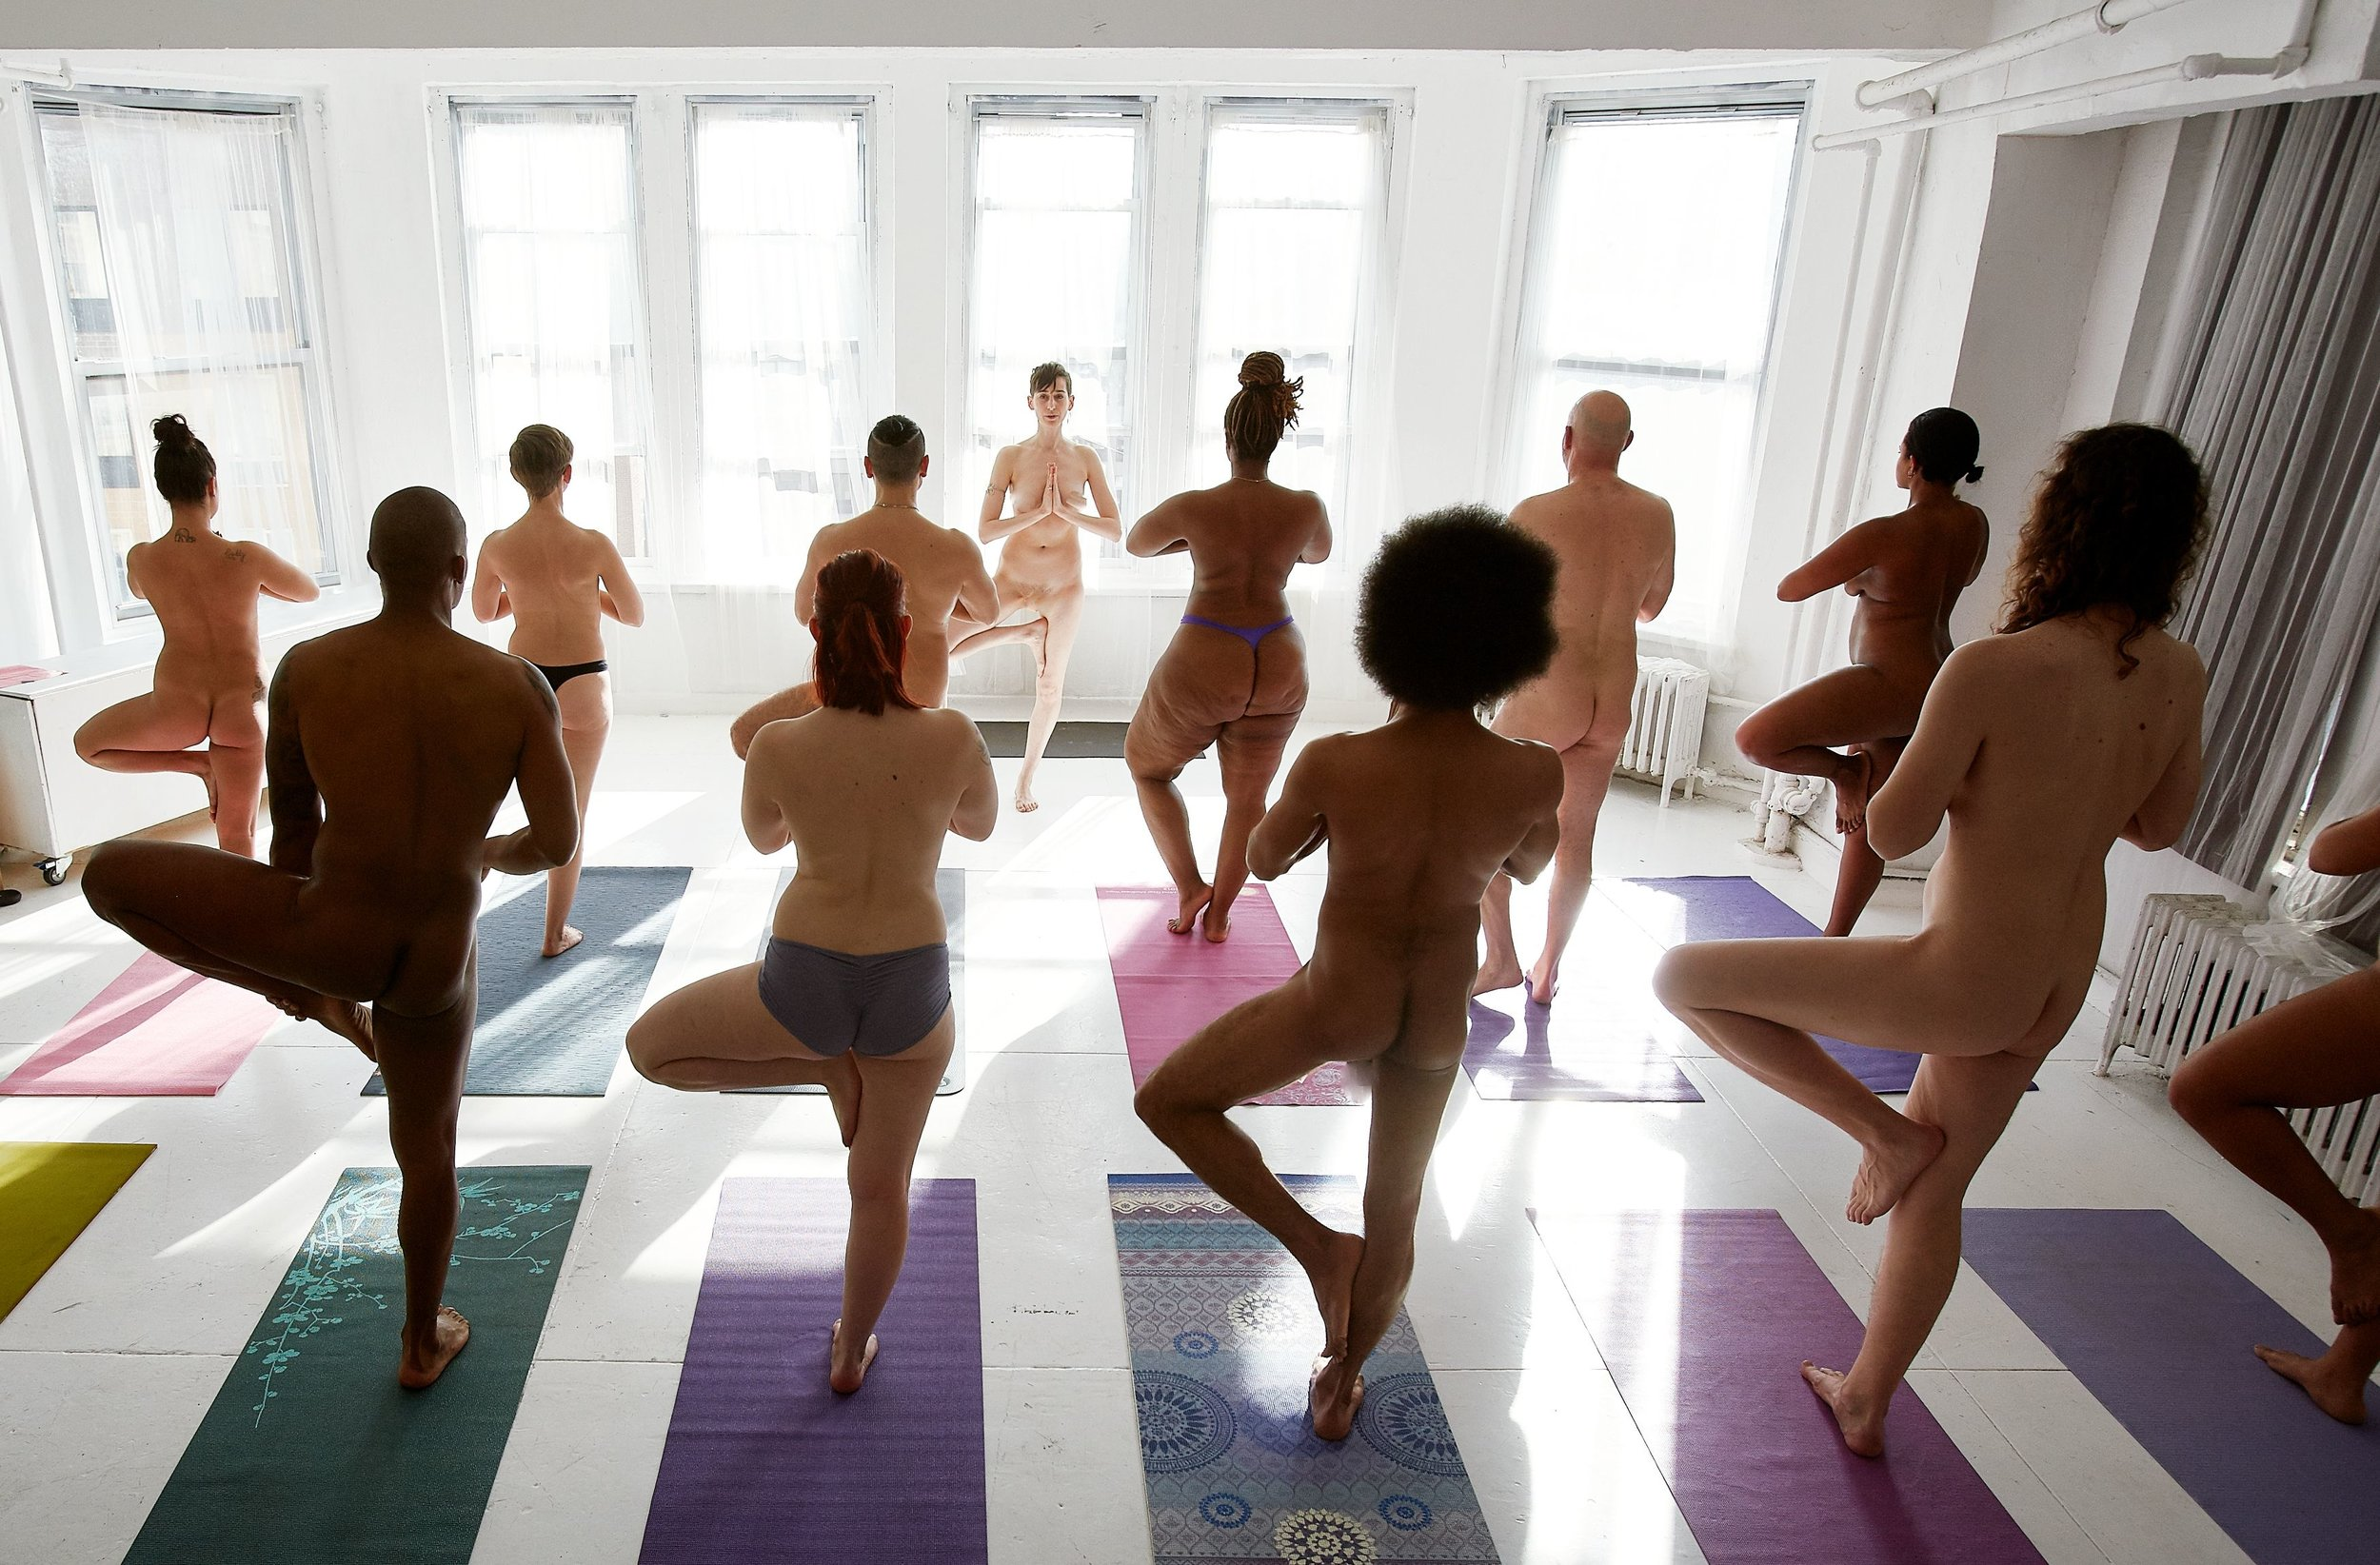 A Naked! Yoga & Pilates class with Willow at Naked in Motion